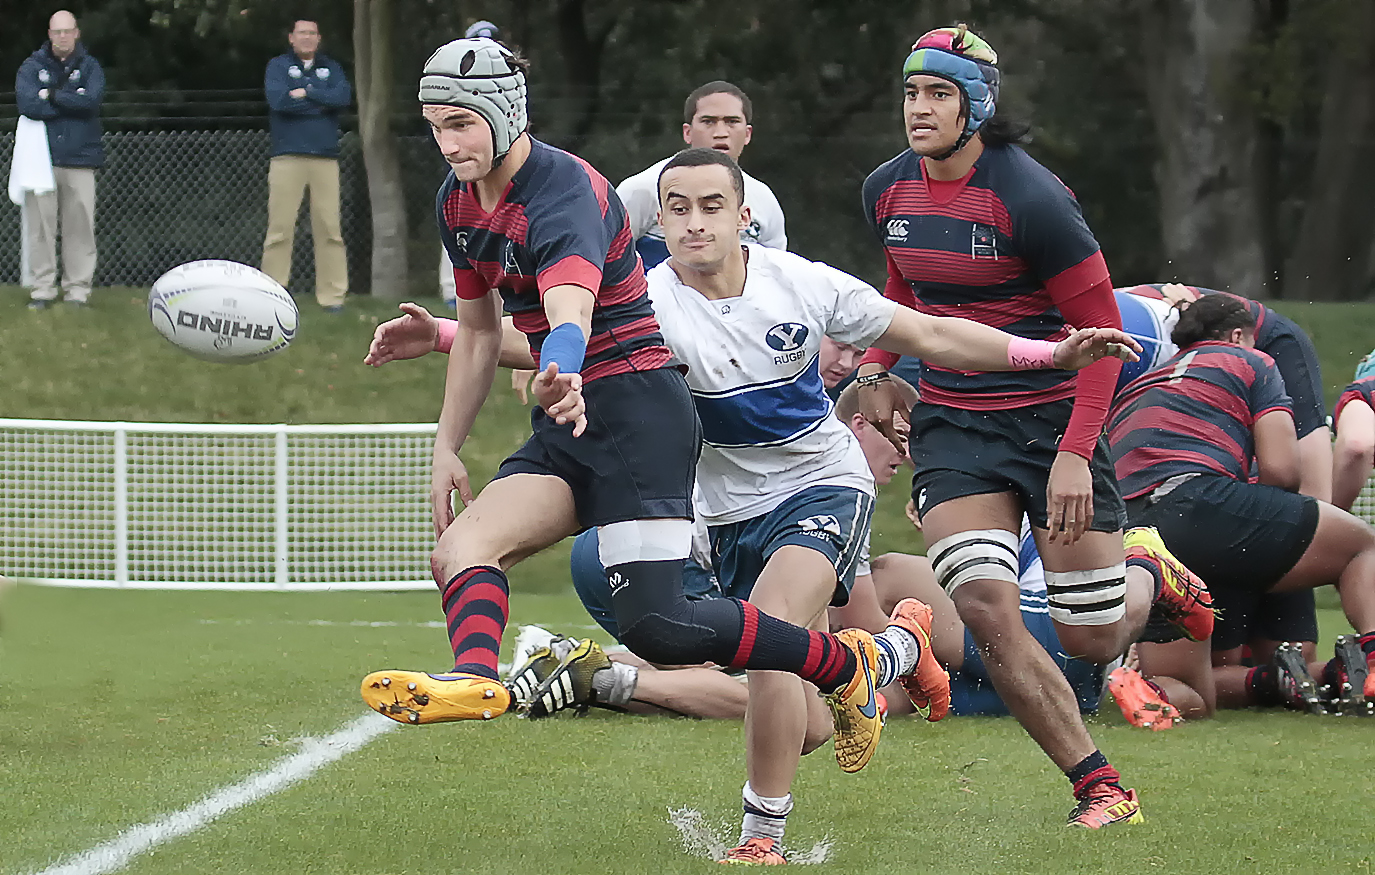 Saint Mary's rugby v BYU Feb 18, 2017. Michael Geib photos.